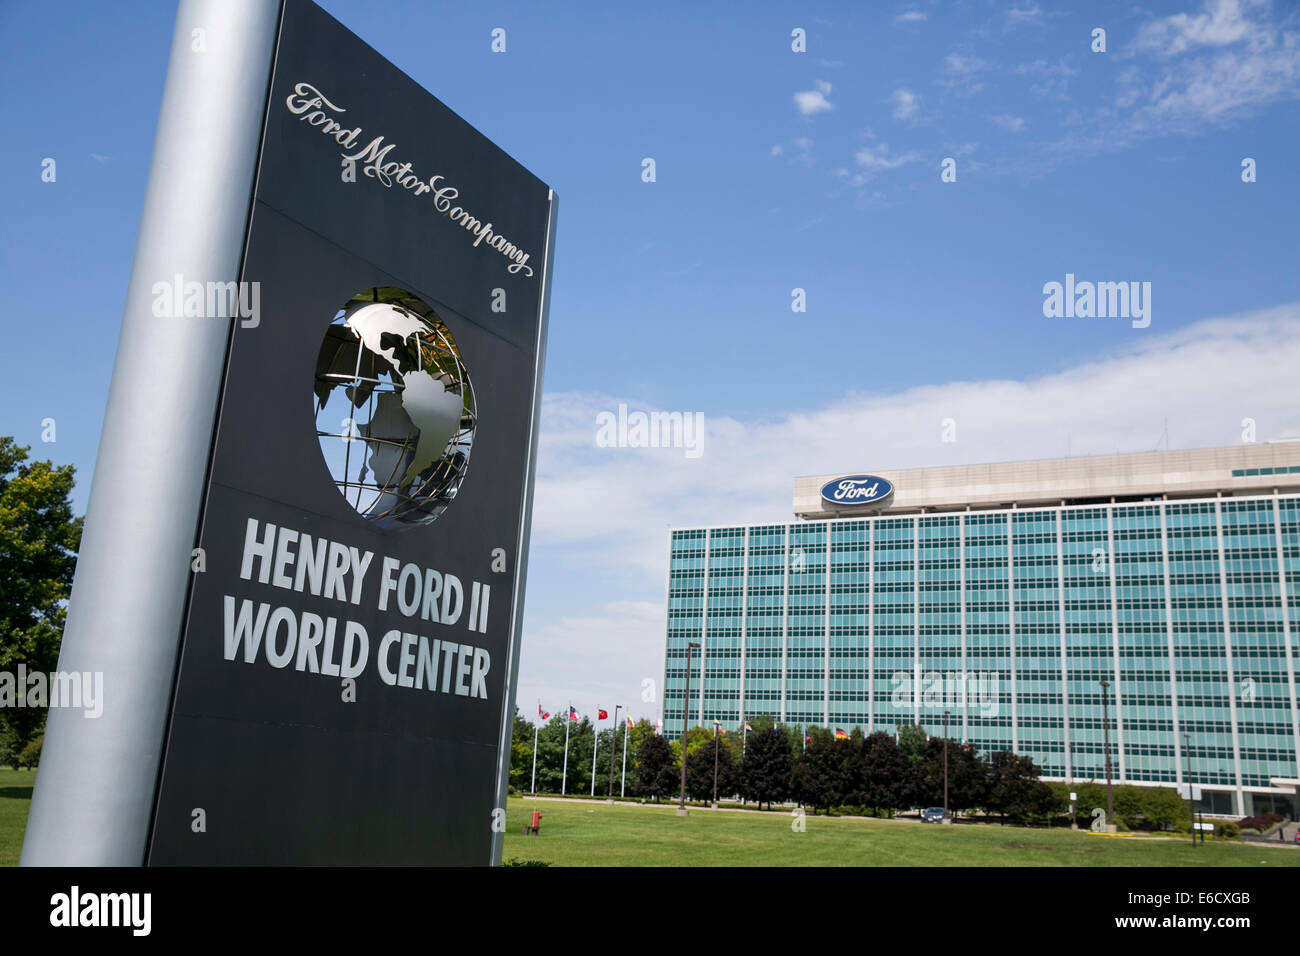 The headquarters of the ford motor company in dearborn michigan